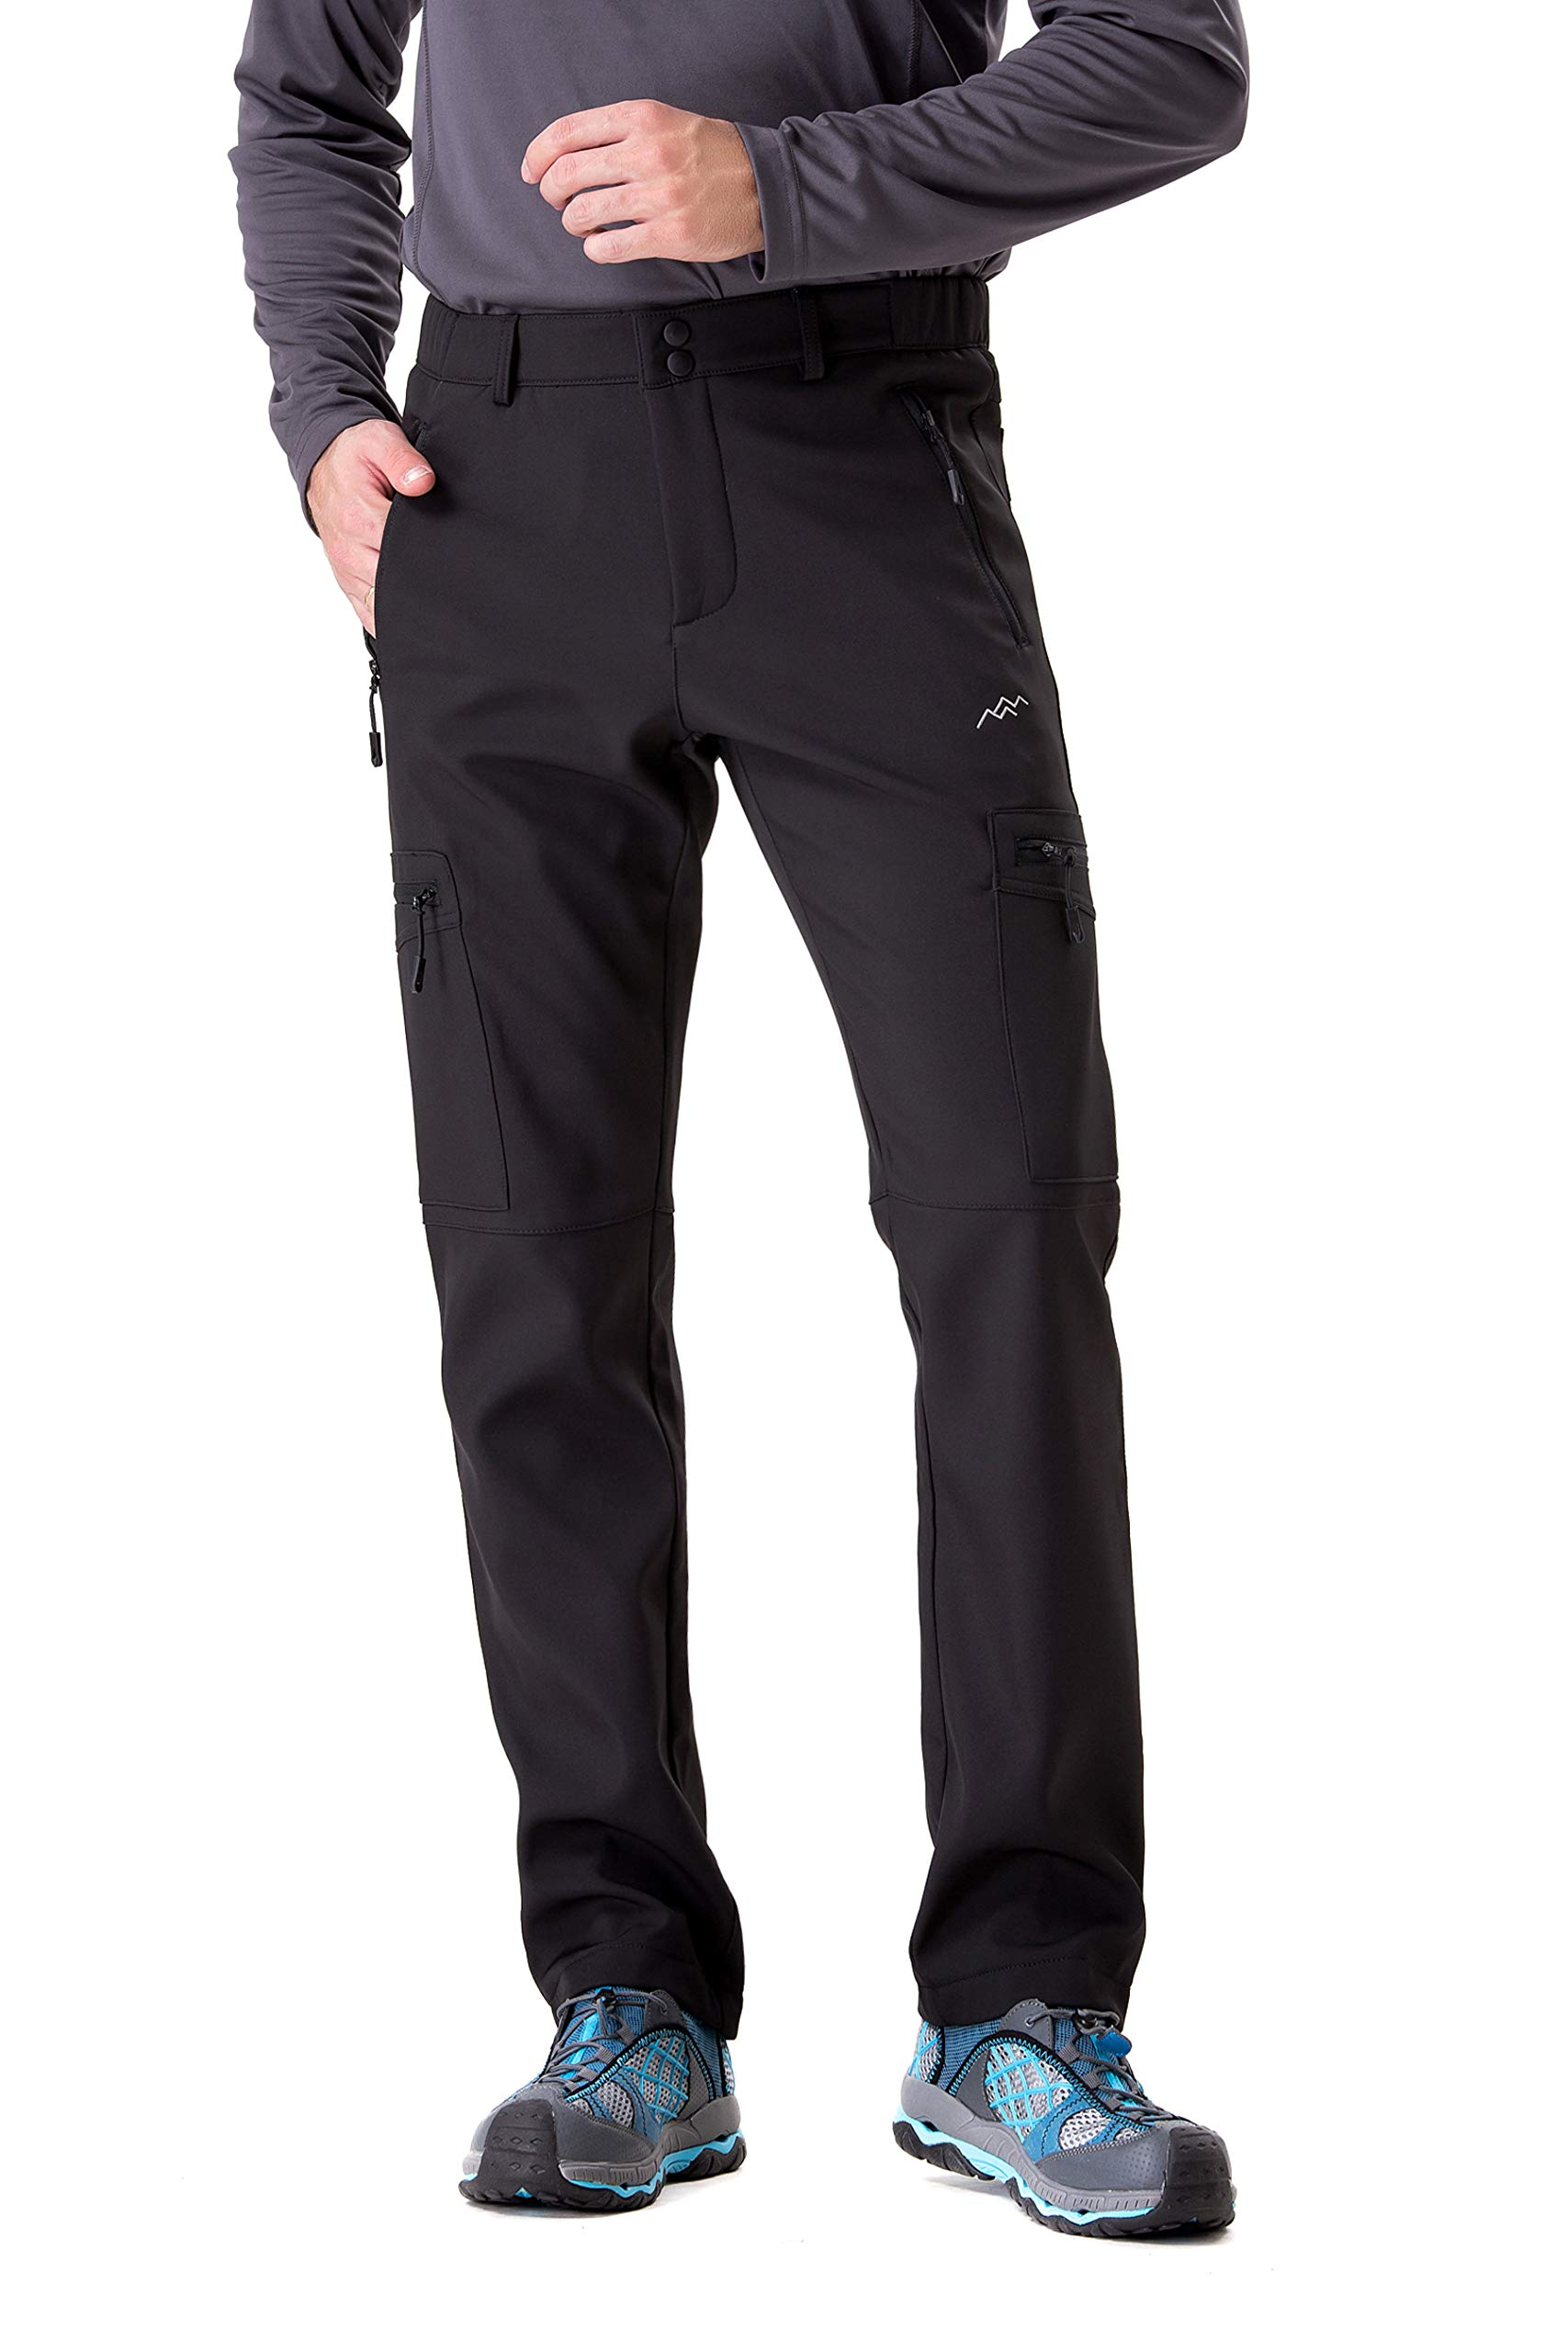 TRAILSIDE SUPPLY CO. Men's Fleece-Lined Softshell Cargo Pants, Insulated, Water/Wind-Resistant